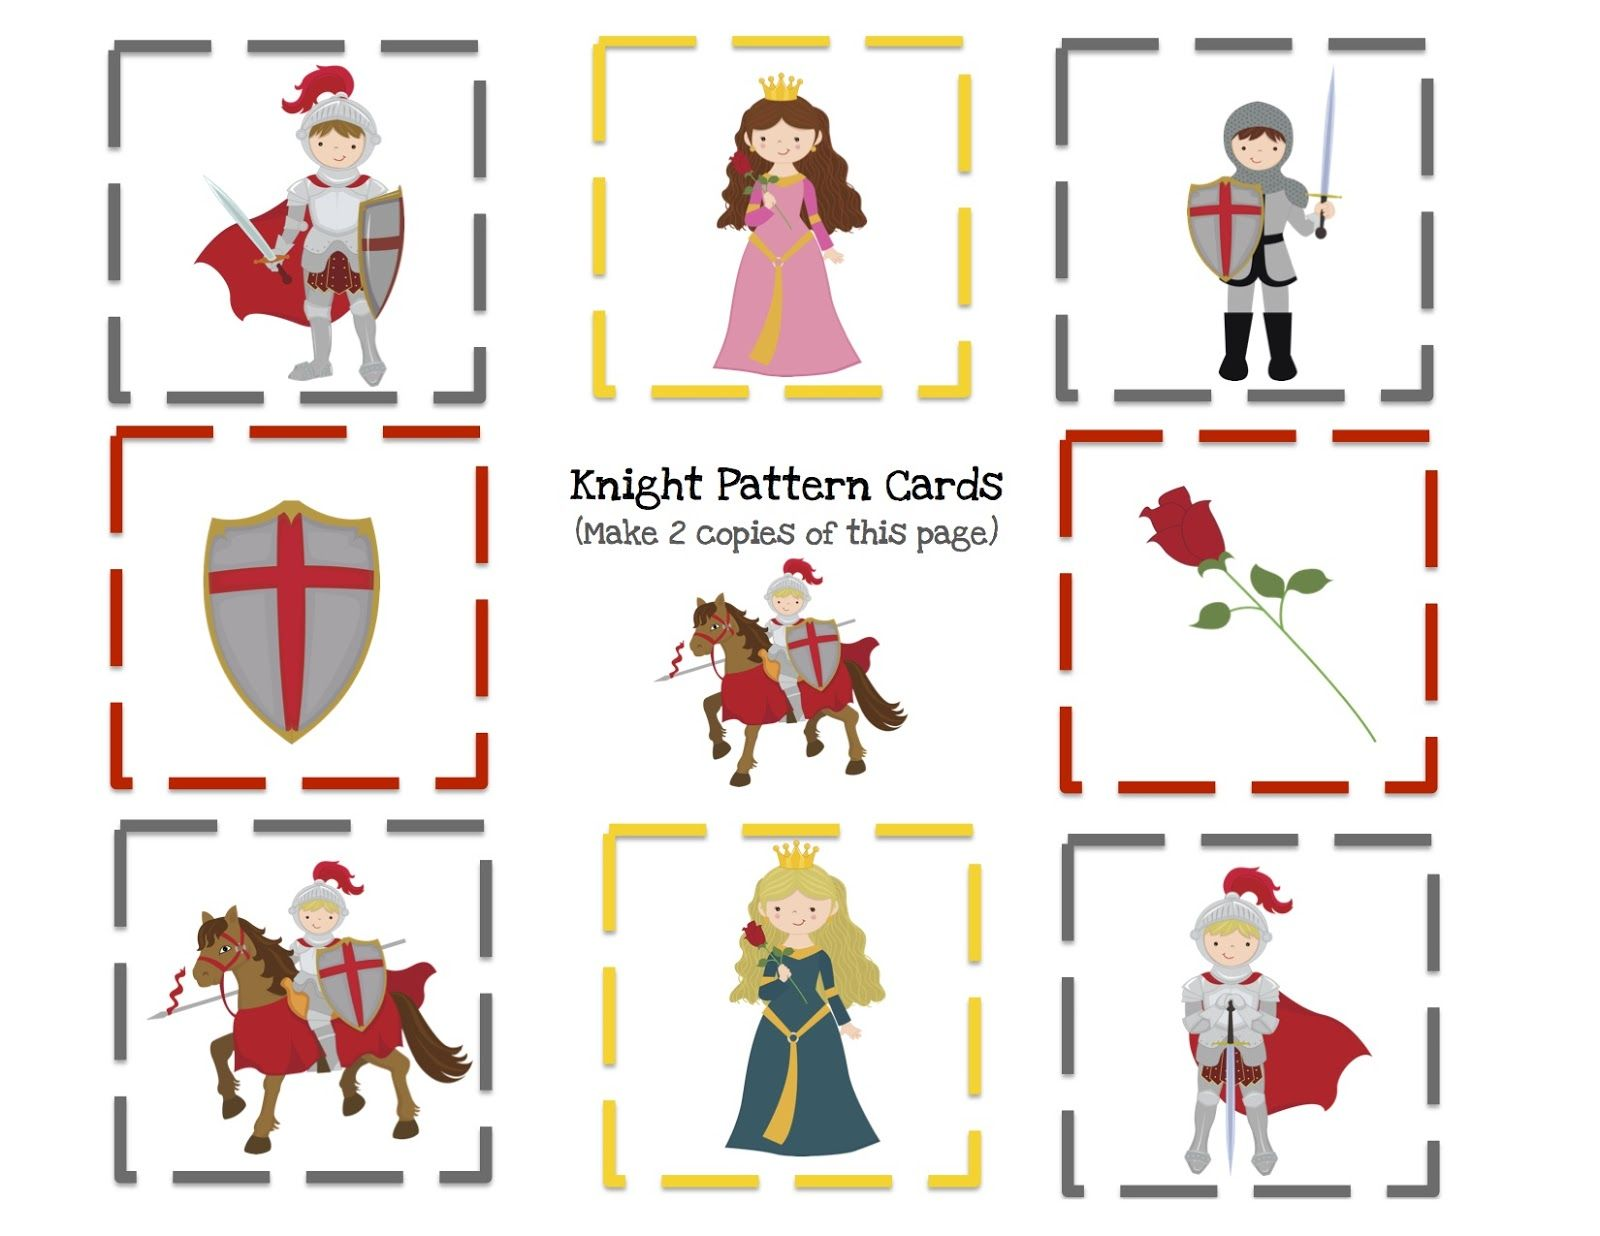 Knight 8 Pattern Cards Template 1 600 1 236 Pixels